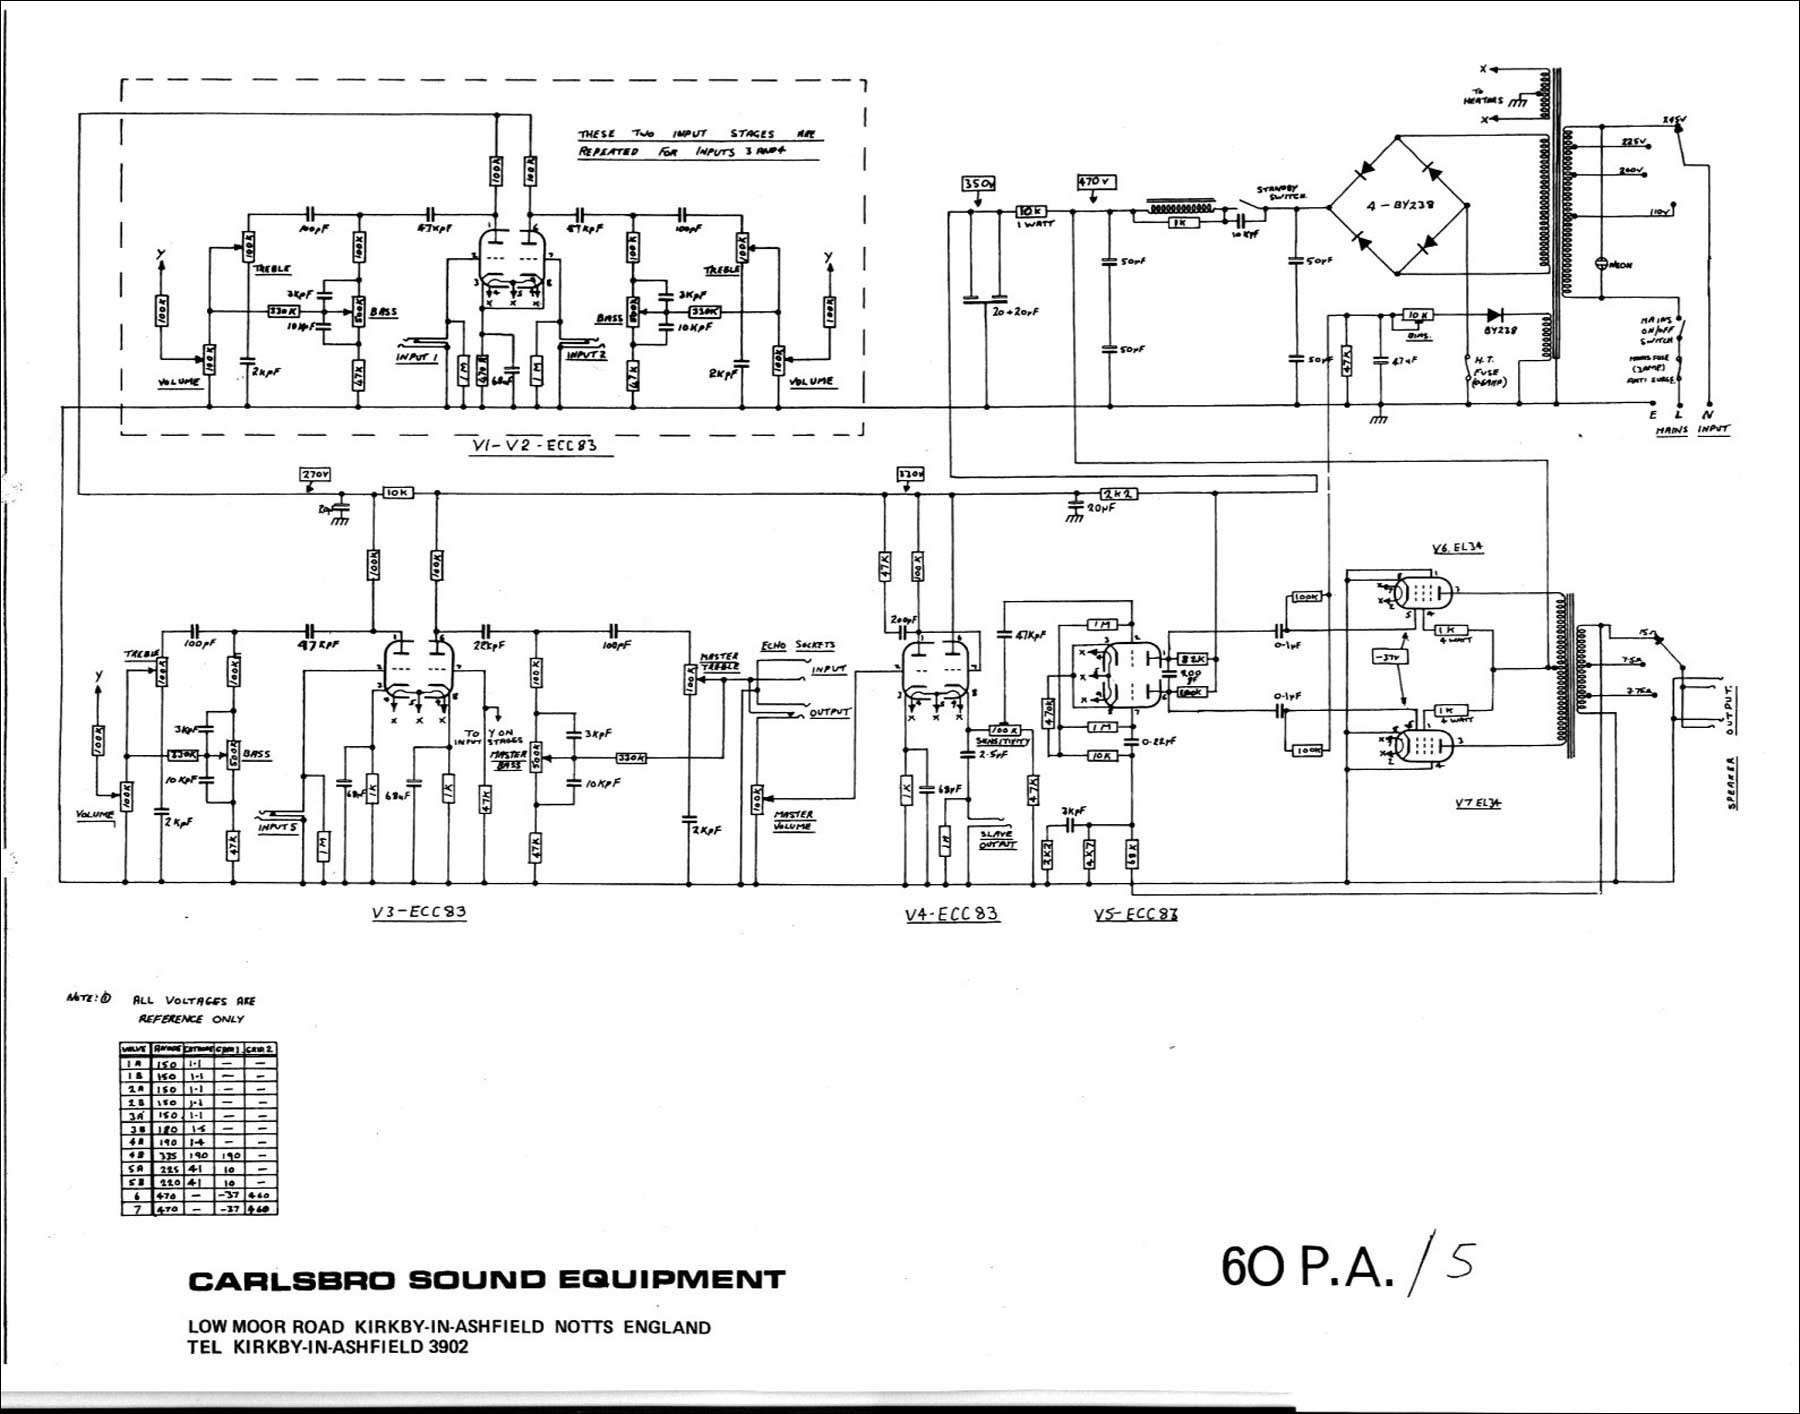 Peavey Wiring Diagrams Free Diagram For You Bass T 40 B Schematics Rh 14 1 Schlaglicht Regional De Wolfgang